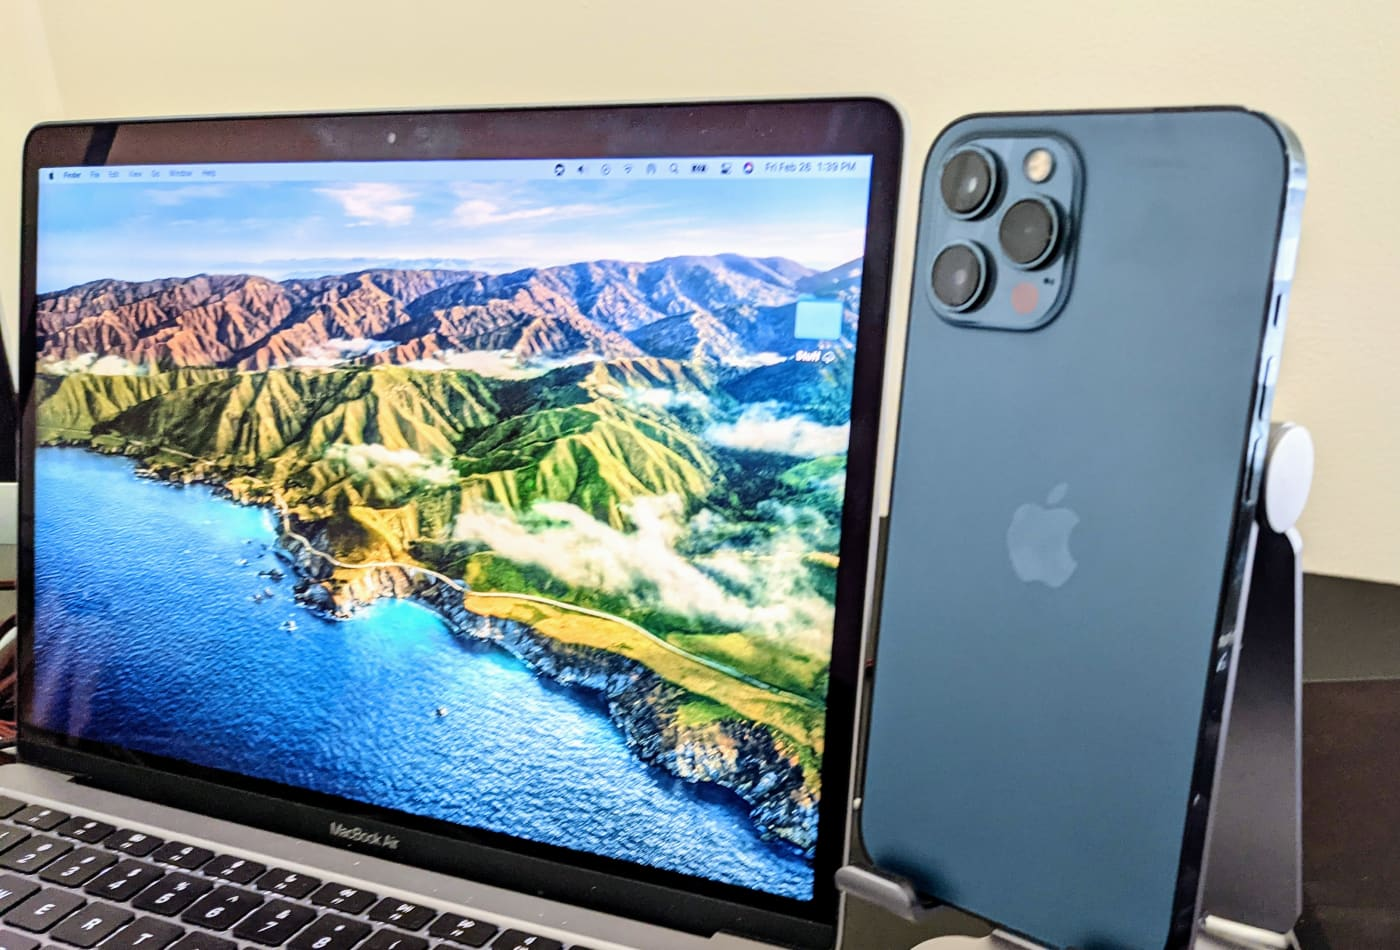 How to use your iPhone as a webcam on a Mac so your video chats are much clearer